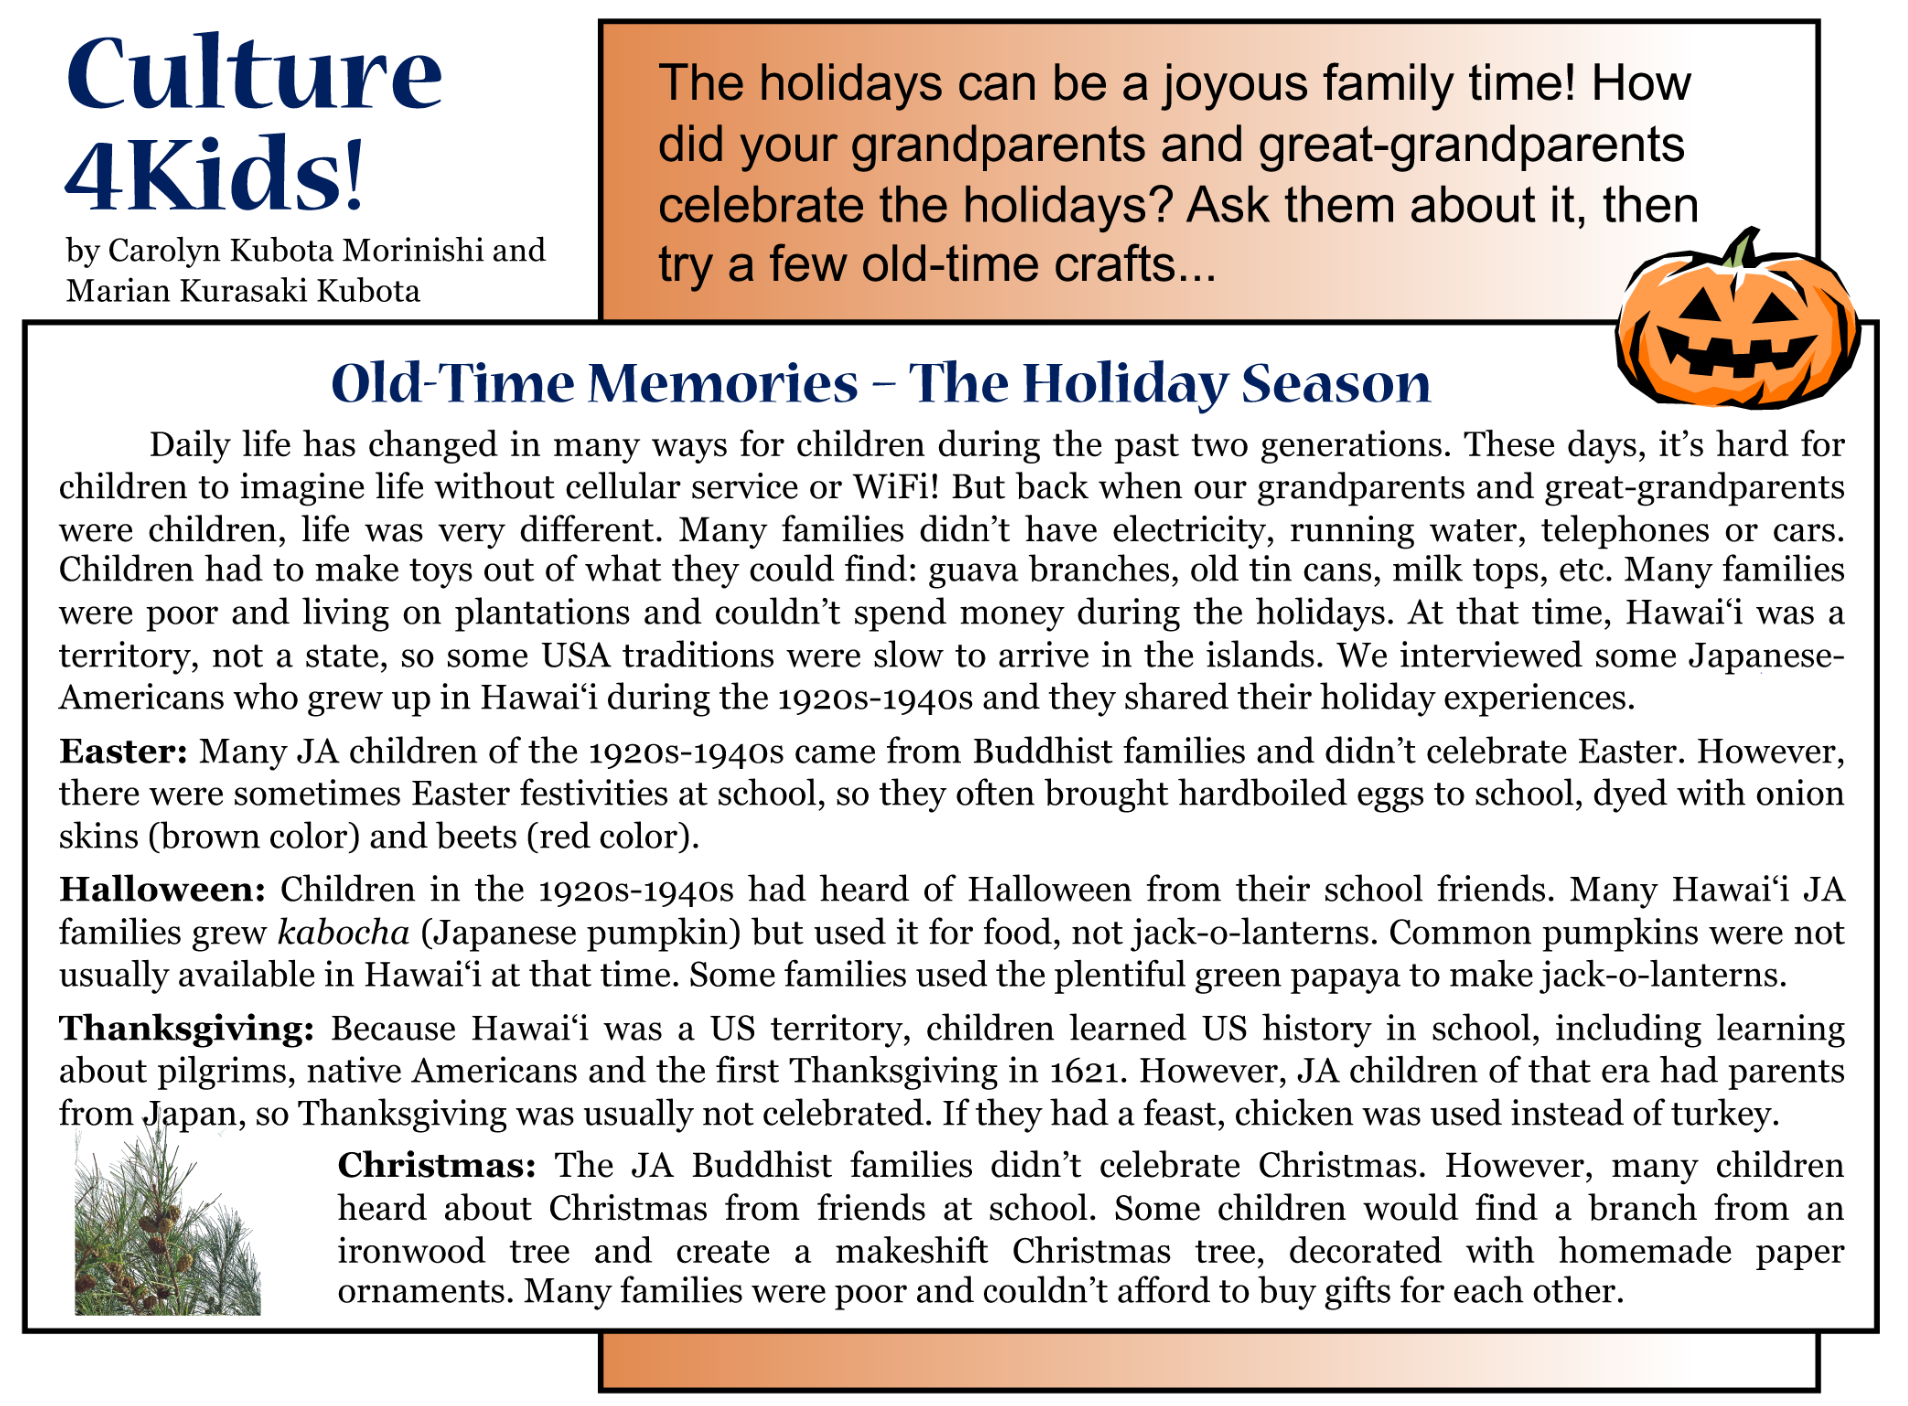 Culture4Kids! Old Time Memories - The Holiday Season